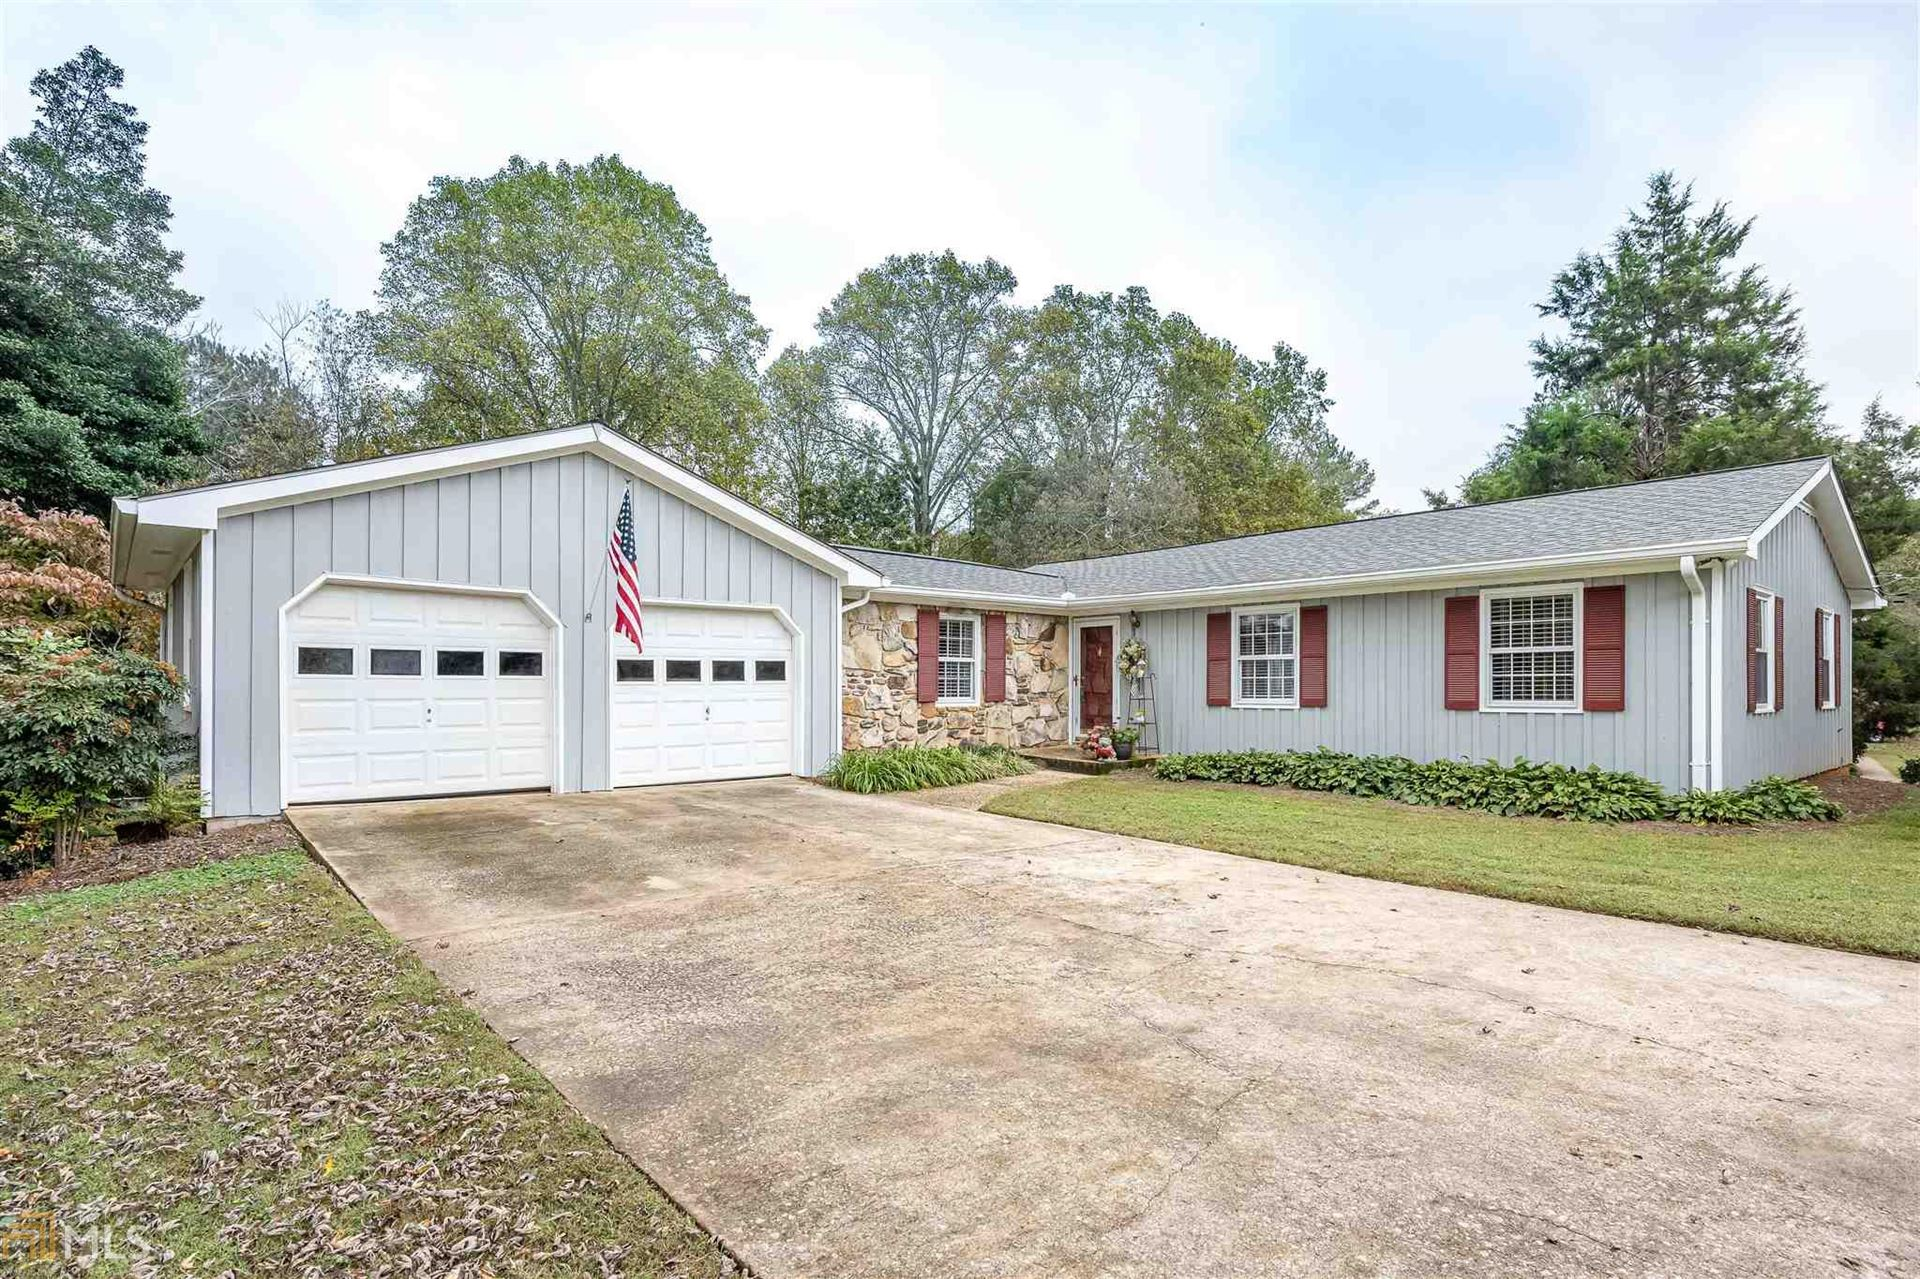 193 Cochran Ridge Rd, Dallas, GA 30157 - MLS#: 8879075